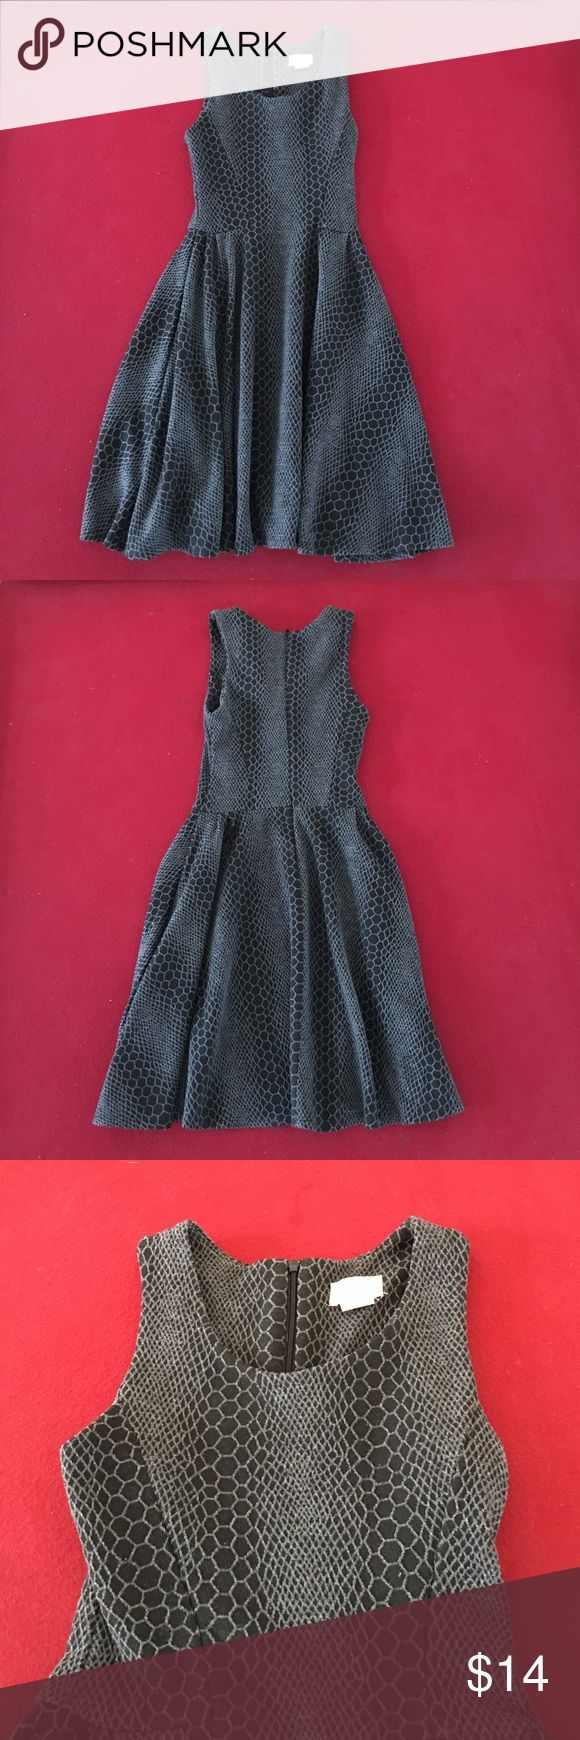 Snakeskin Design Skater Dress Women's skater dress with a snakeskin design. This dress is in excellent condition and has a zipper closure in the back. It is dry clean only. Dresses Mini